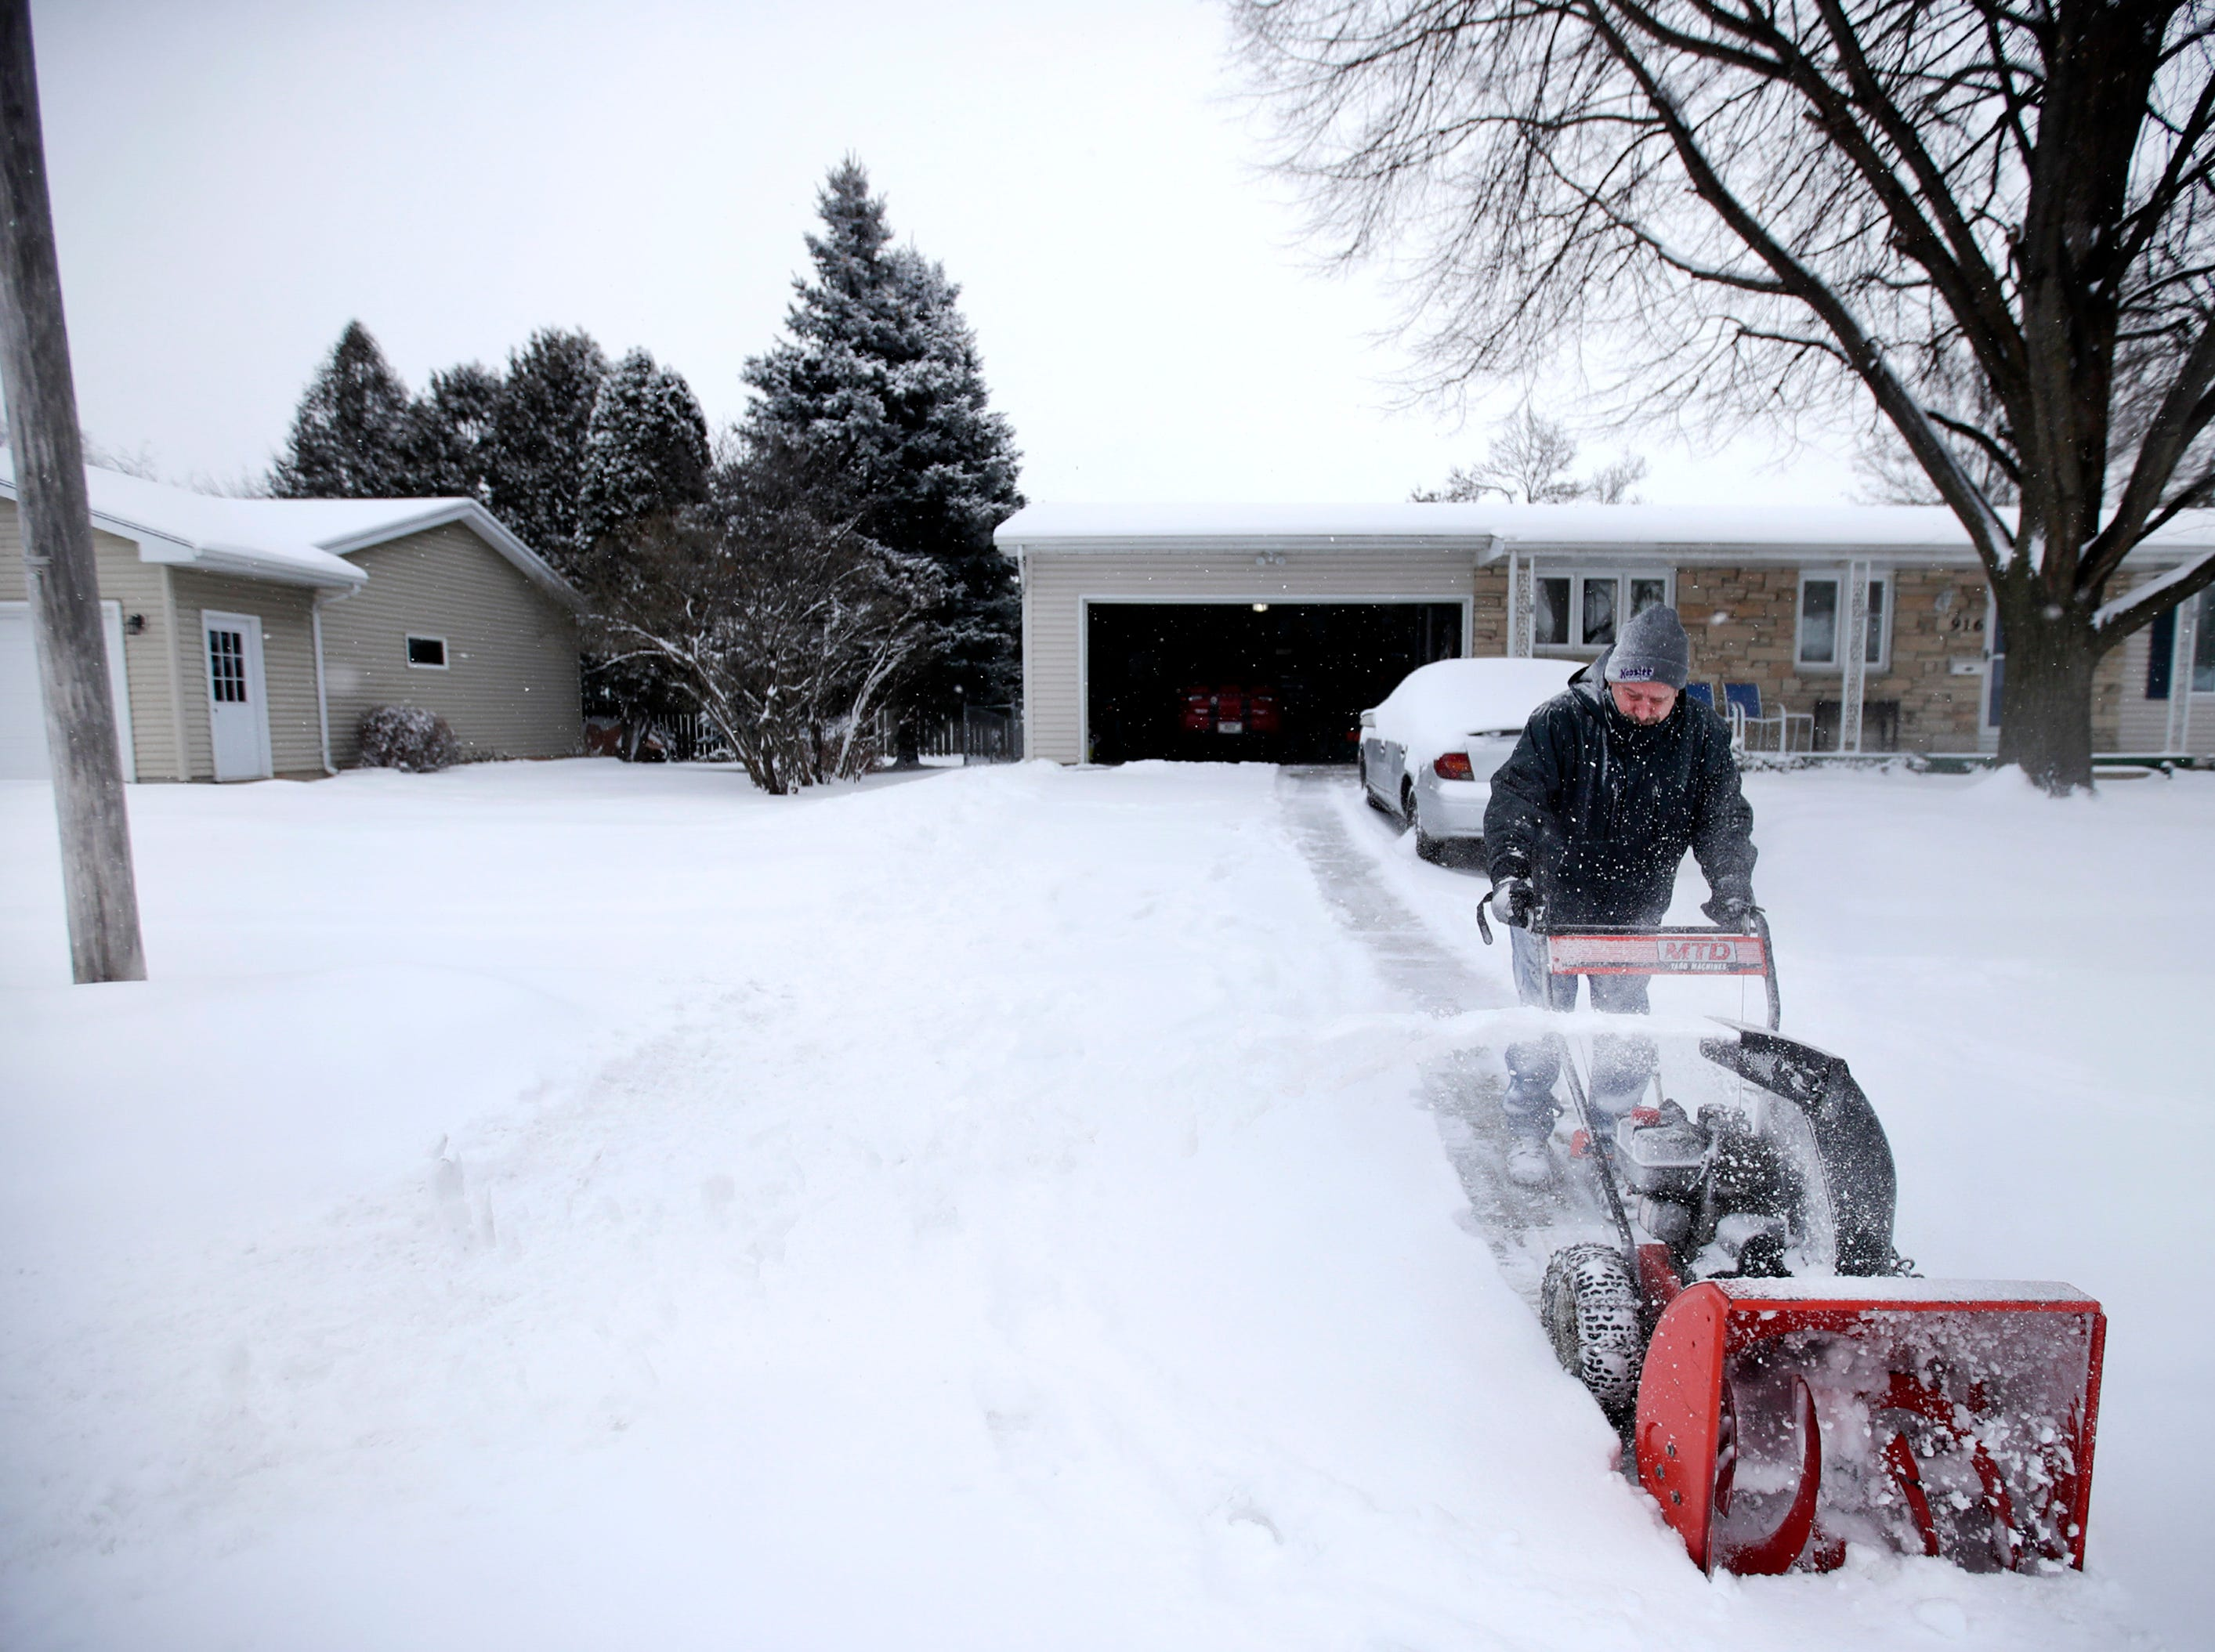 Daniel Putzer, of Oshkosh, snowblows his driveway Wednesday, Jan. 23, 2019, in Oshkosh, Wis.